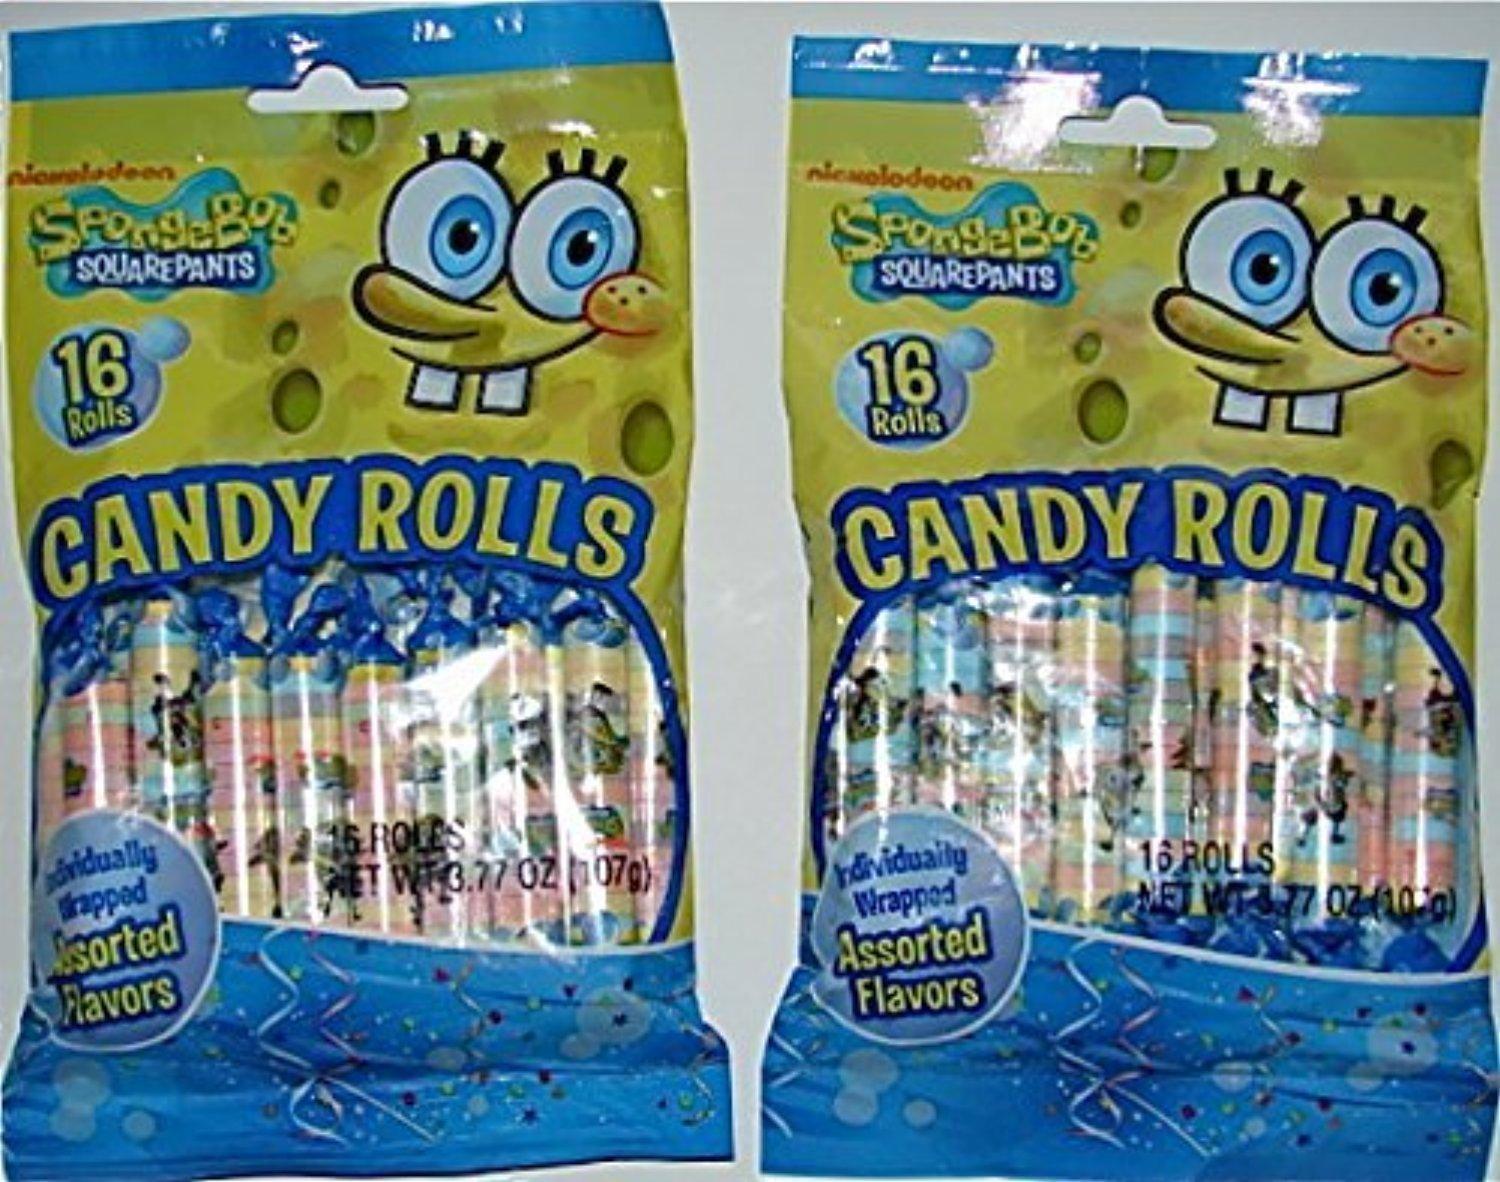 online store sponge bob square pants candy rolls 2 pack by